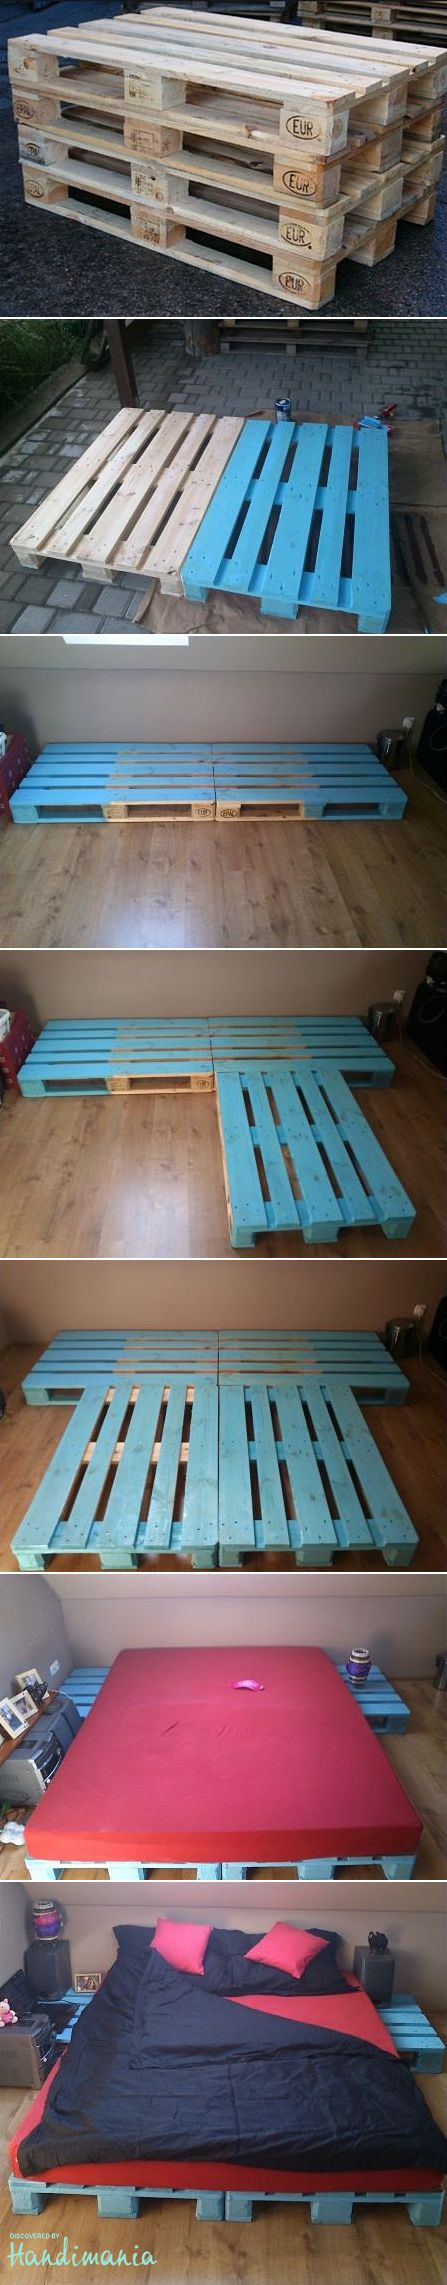 A DIY bed made out of EUR-pallets: cheap (providing you already have a mattress) and easy to do #palette